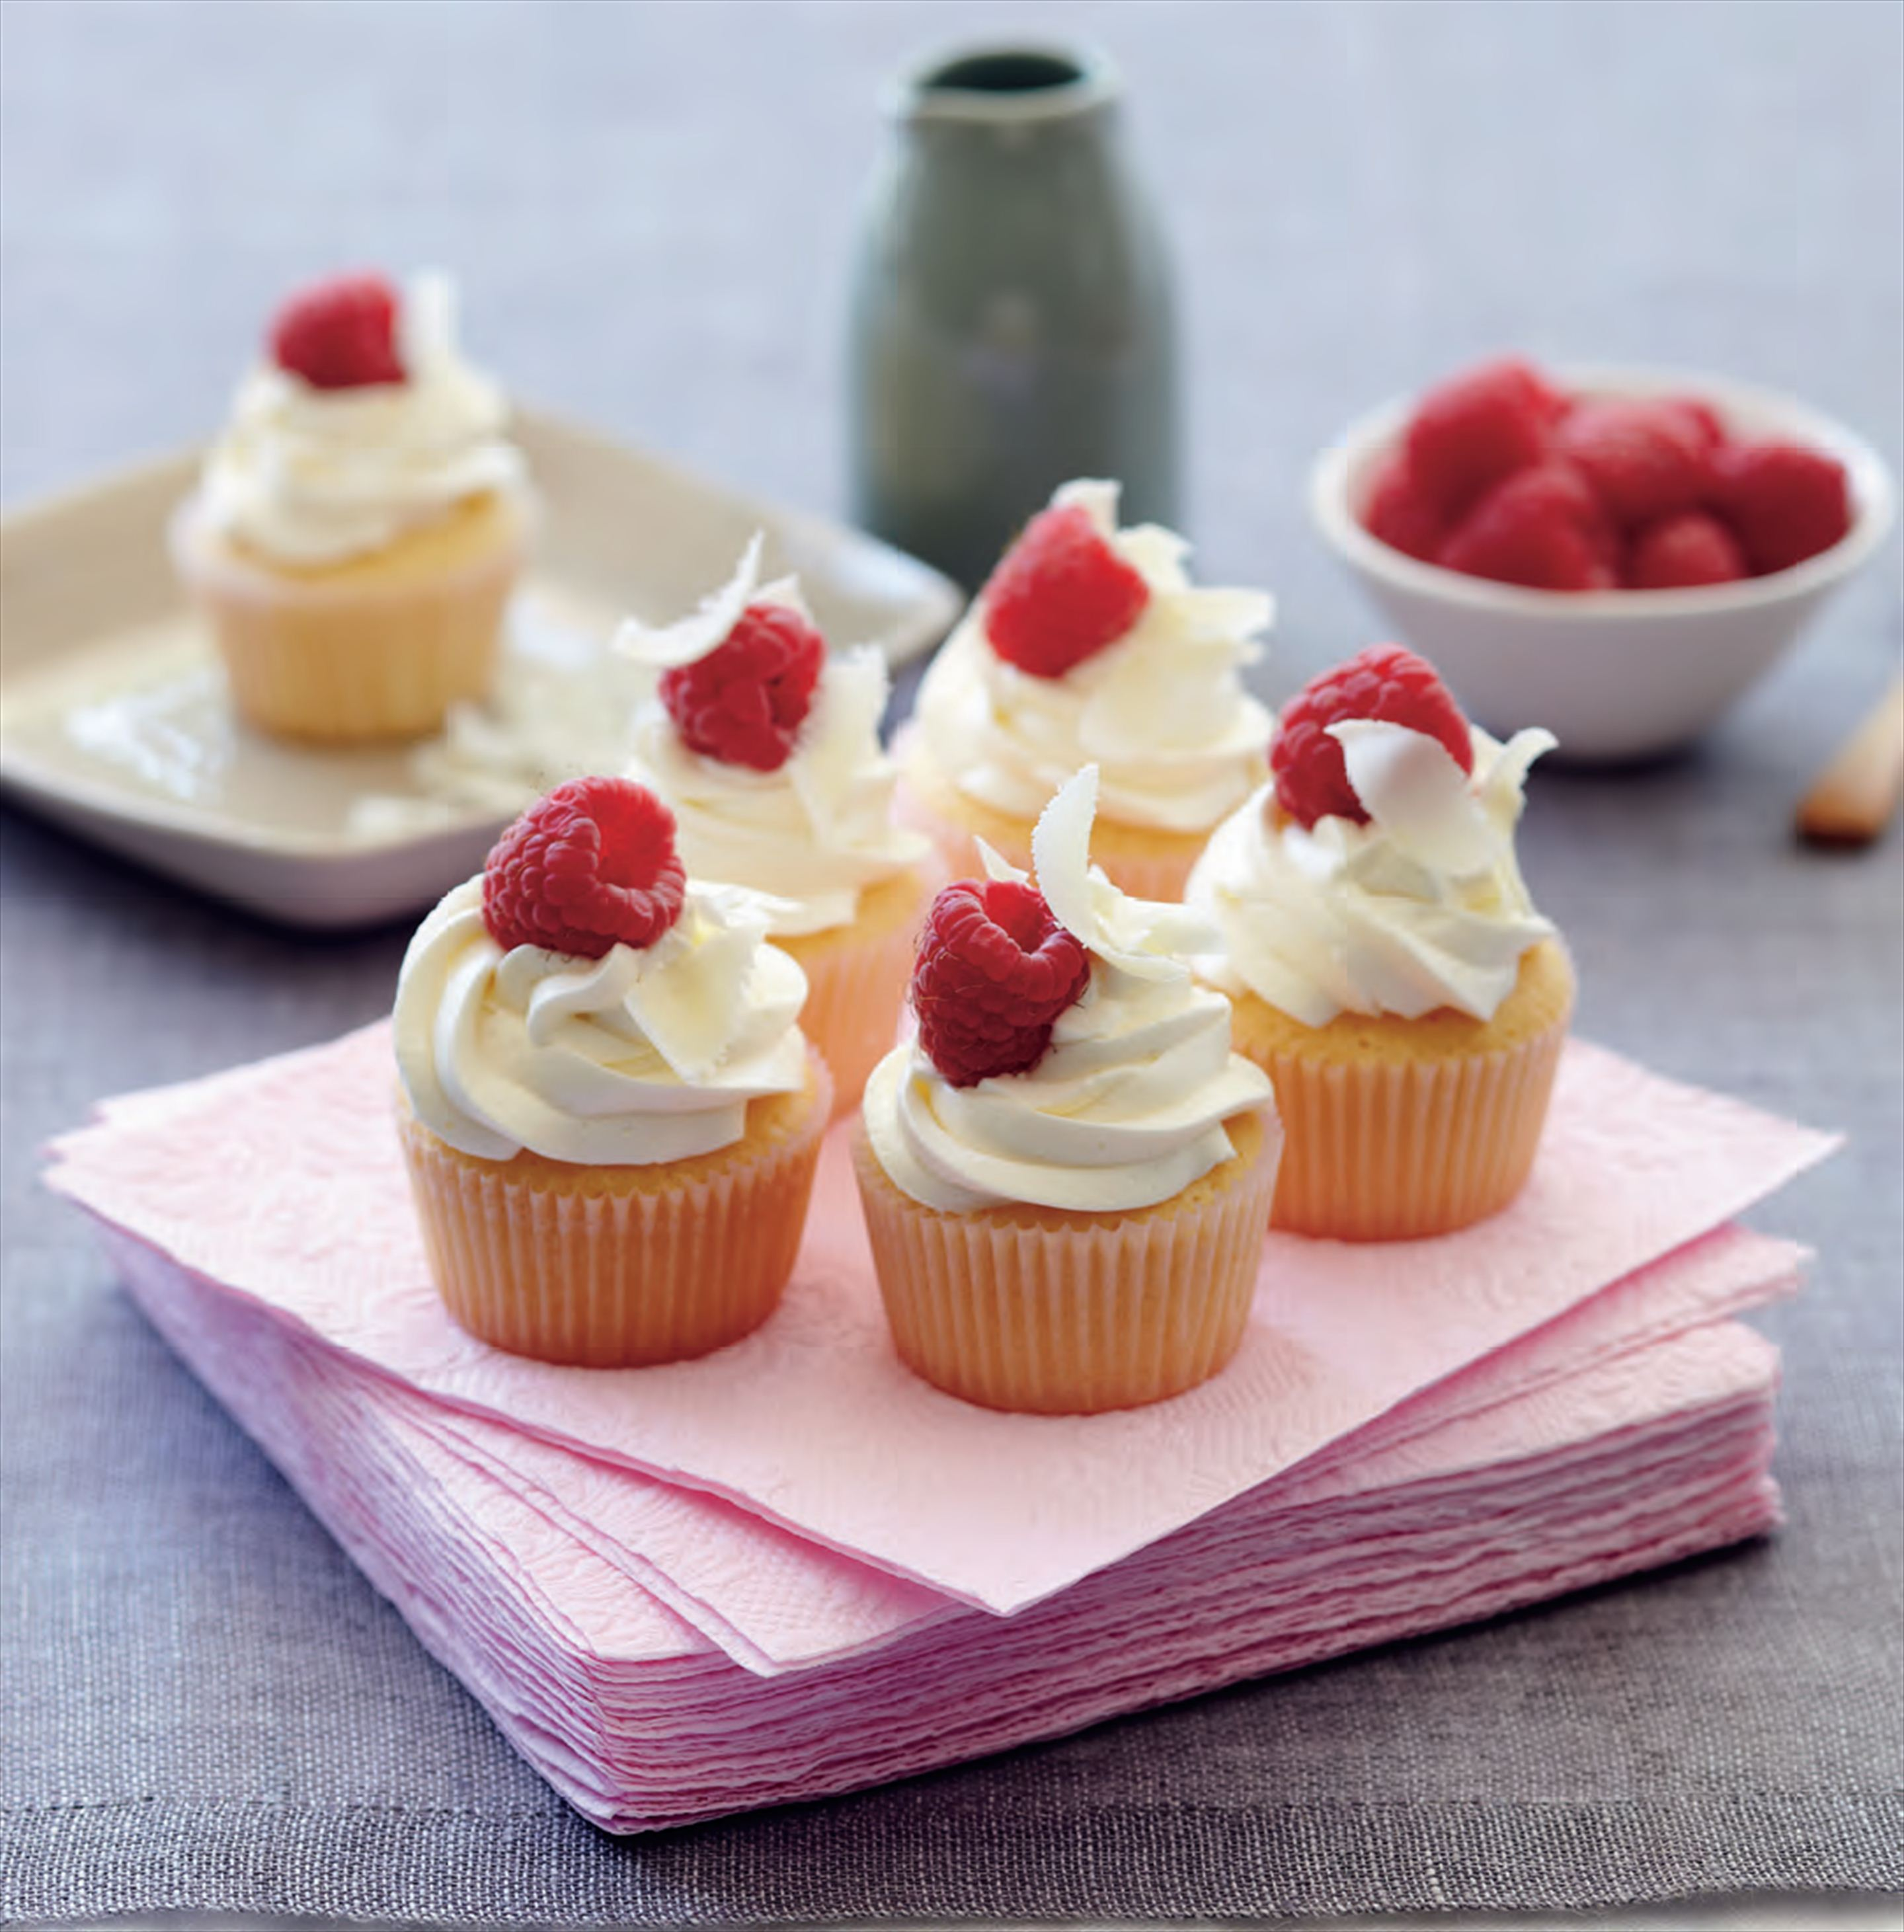 Raspberry cupcakes with white chocolate ganache